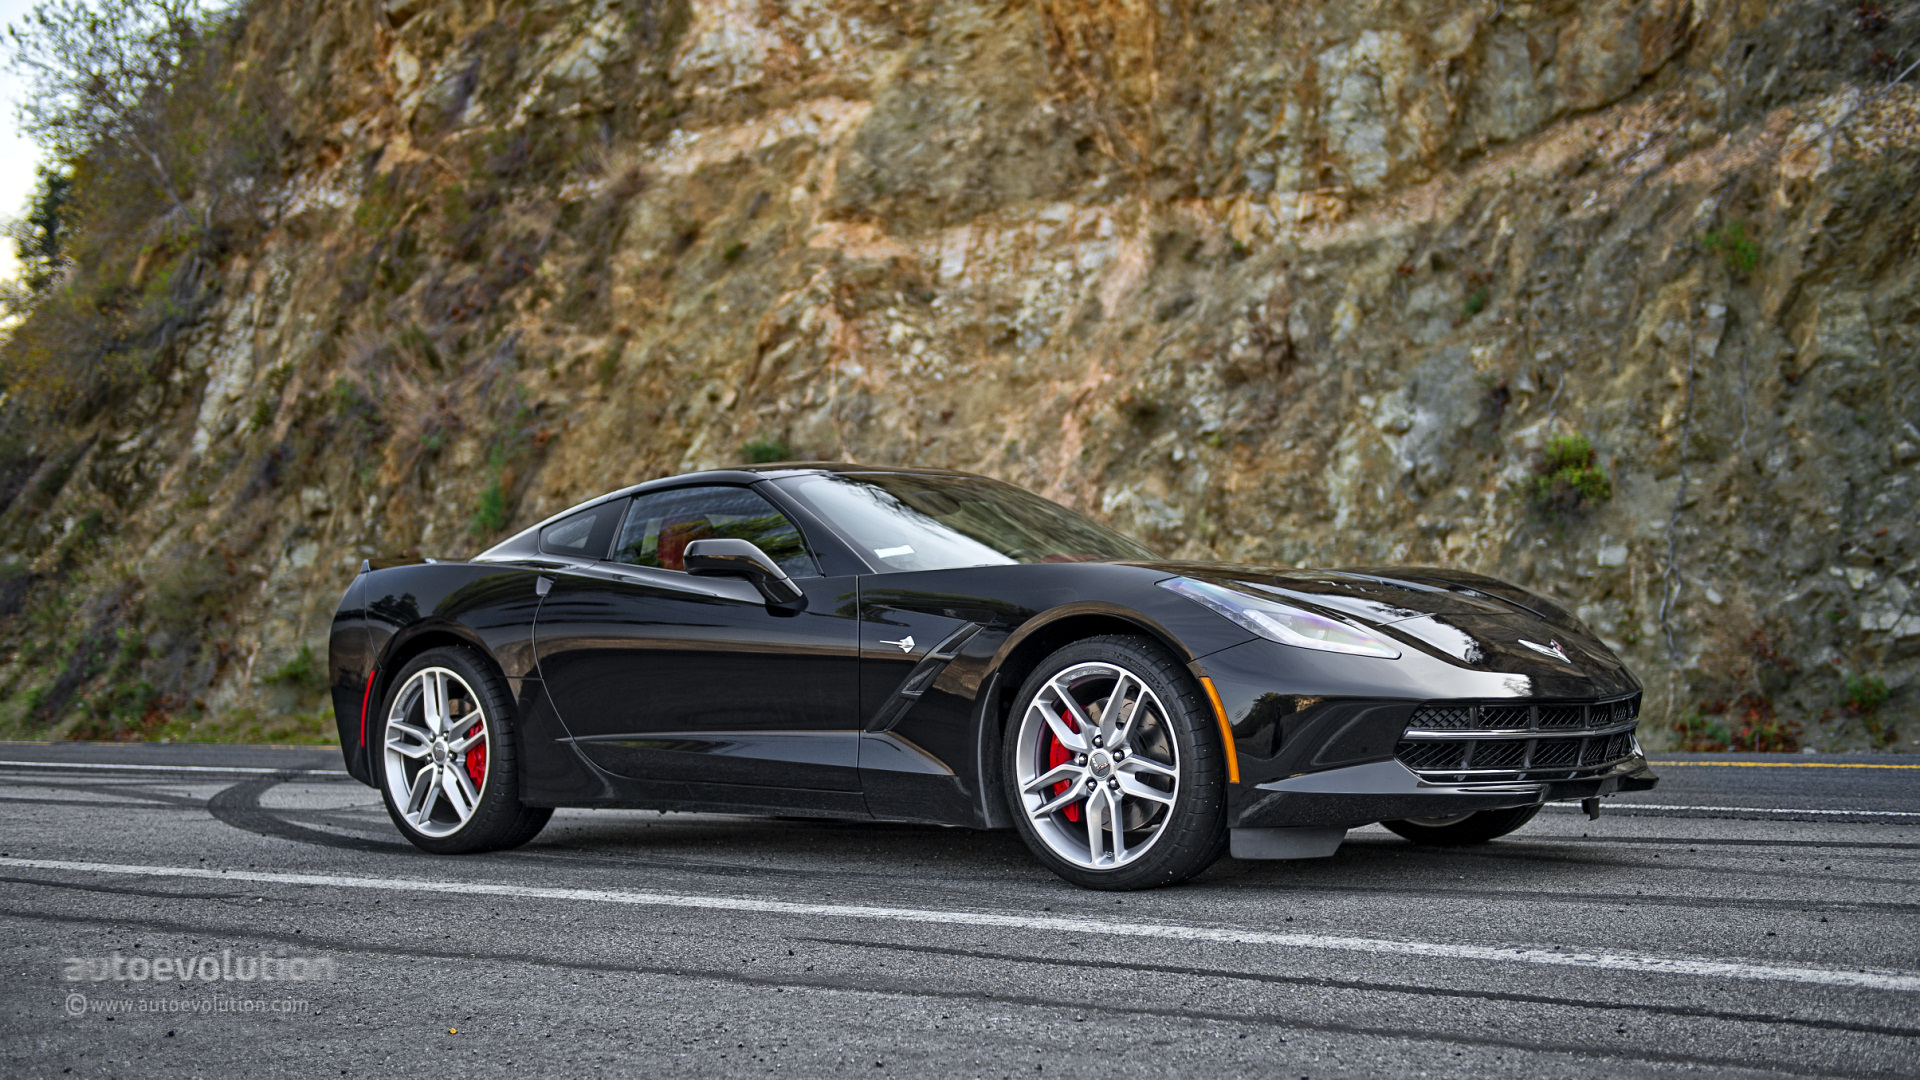 c7 corvette stingray sold 17k units through june 2014 autoevolution. Black Bedroom Furniture Sets. Home Design Ideas